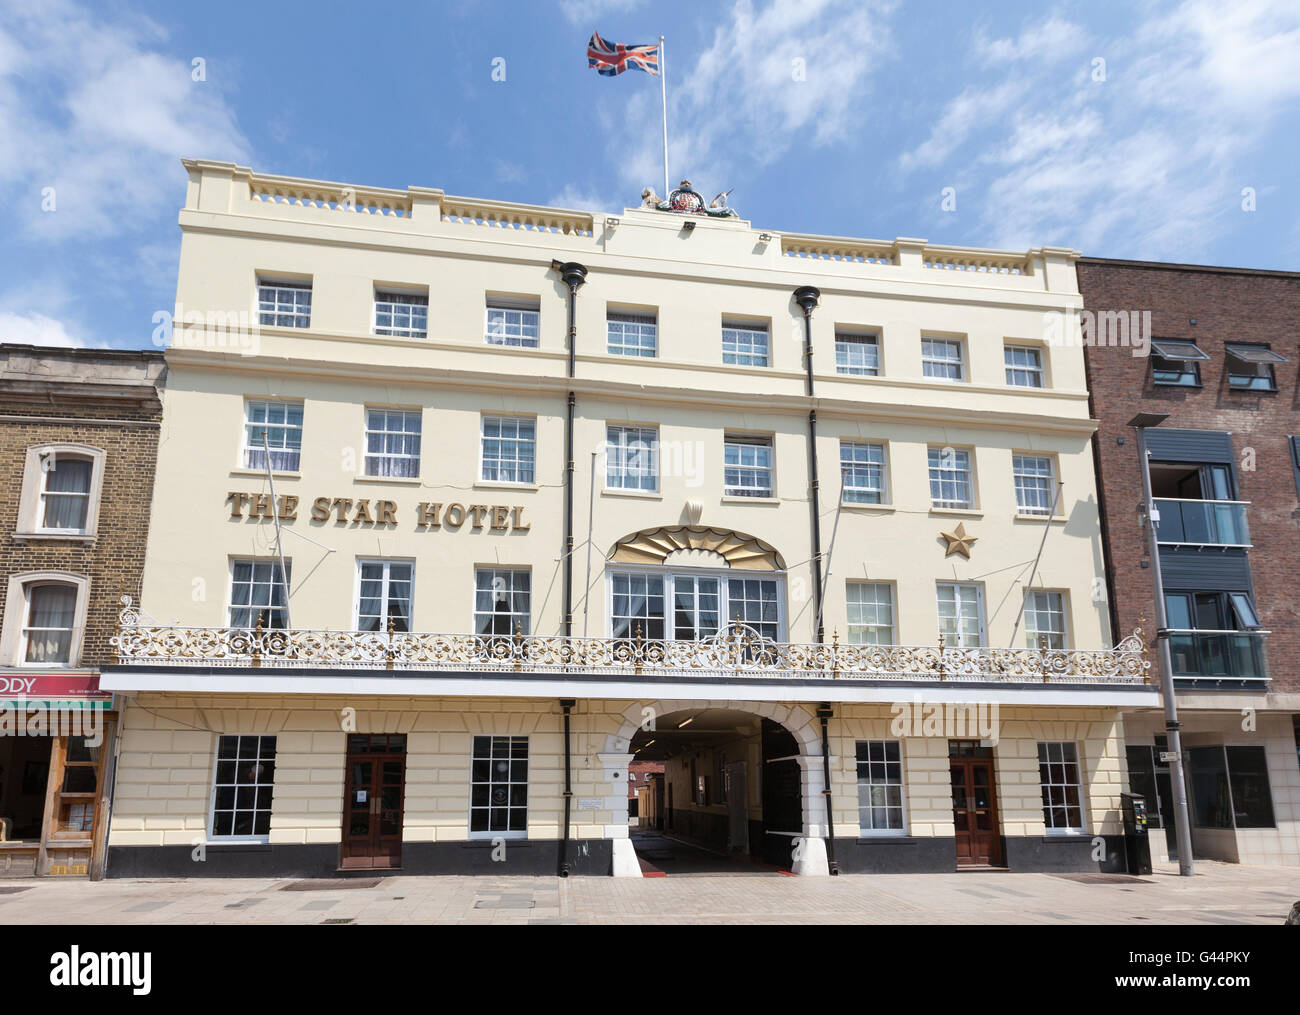 The Star Hotel in Southampton, Hampshire, UK - Stock Image